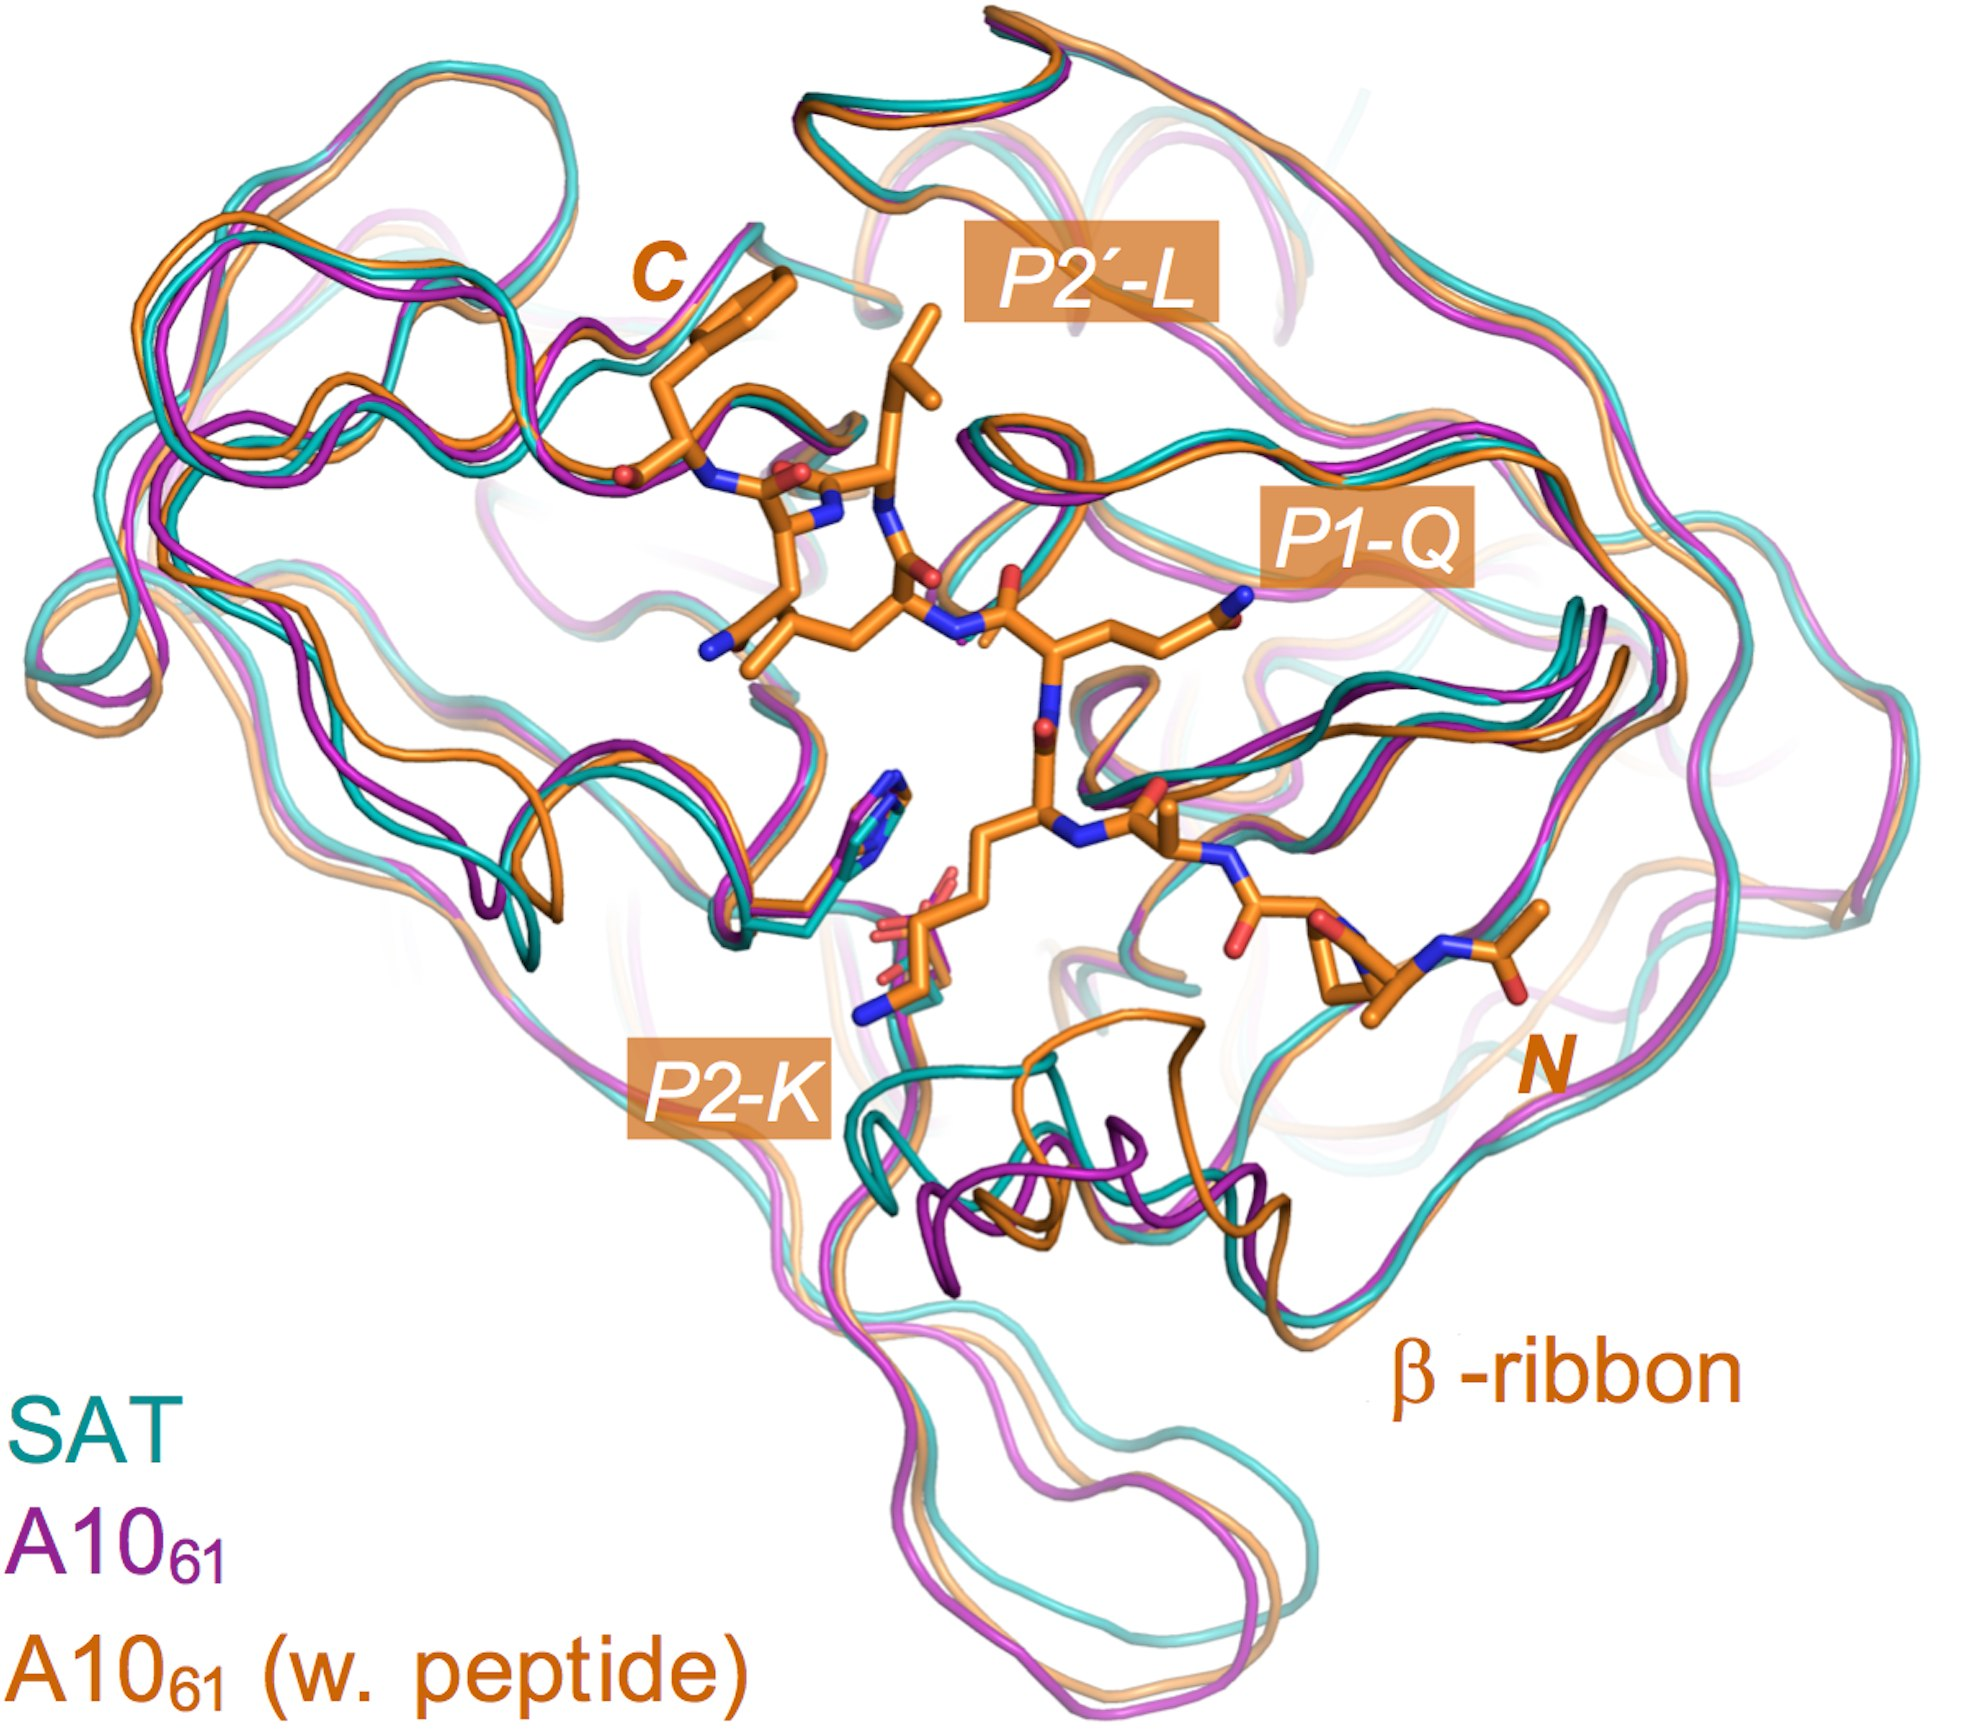 Structure of the 3C protease